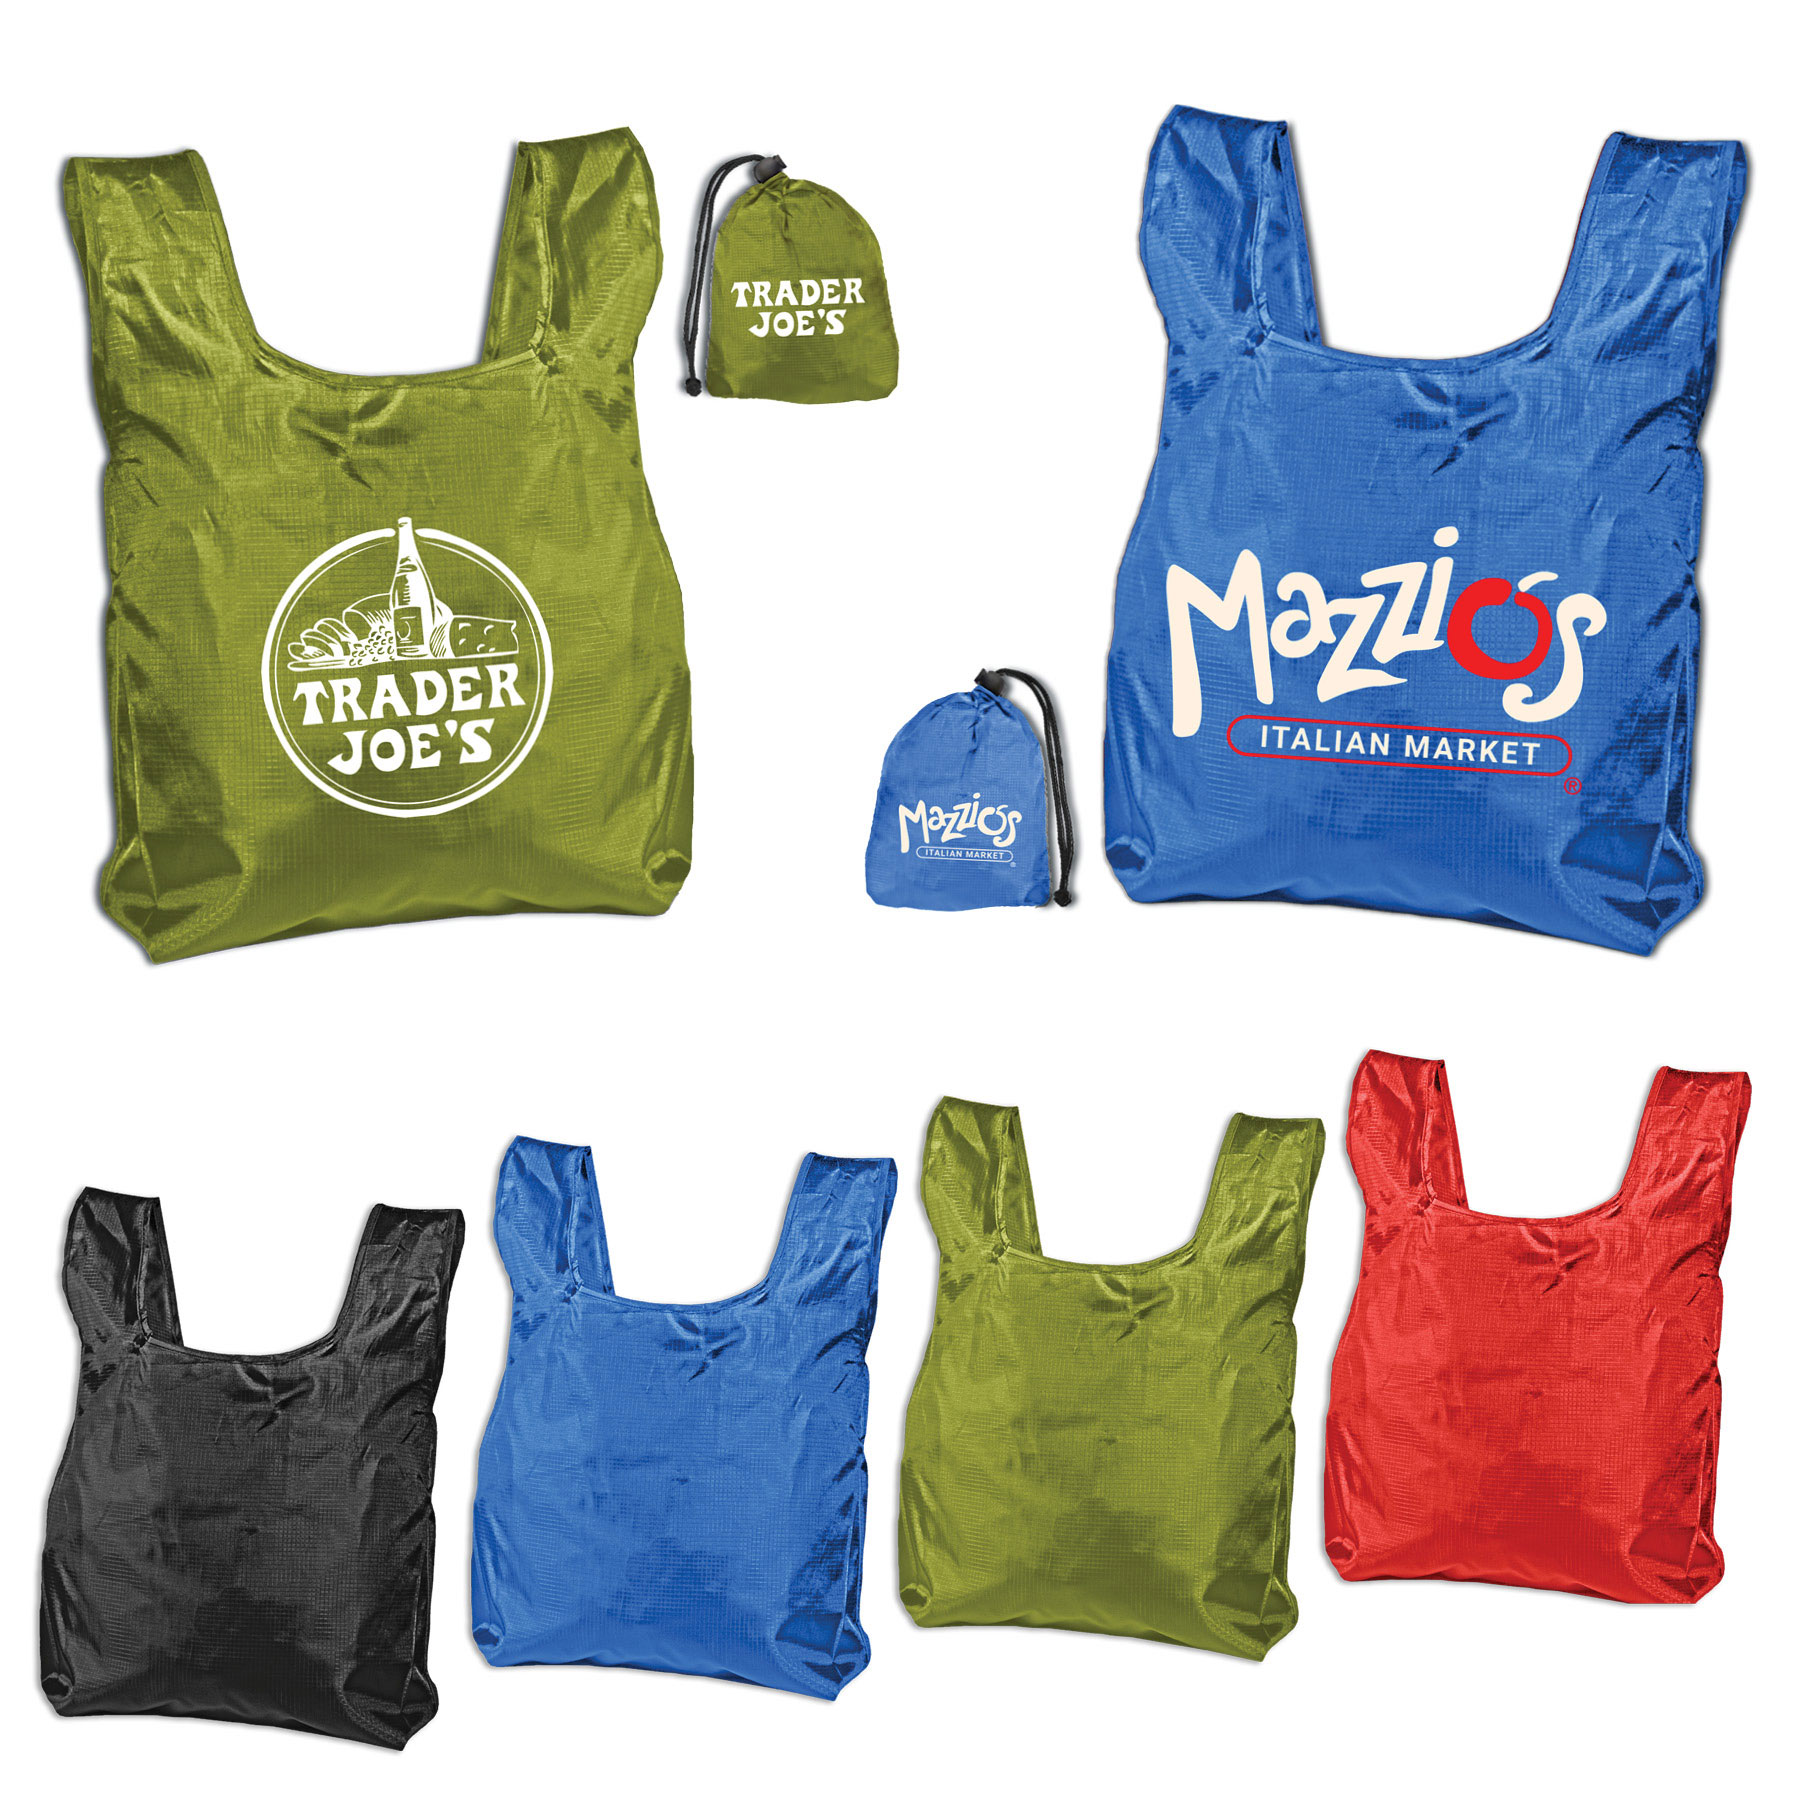 Brand Gear™ Marketplace Shopping Tote Bag™